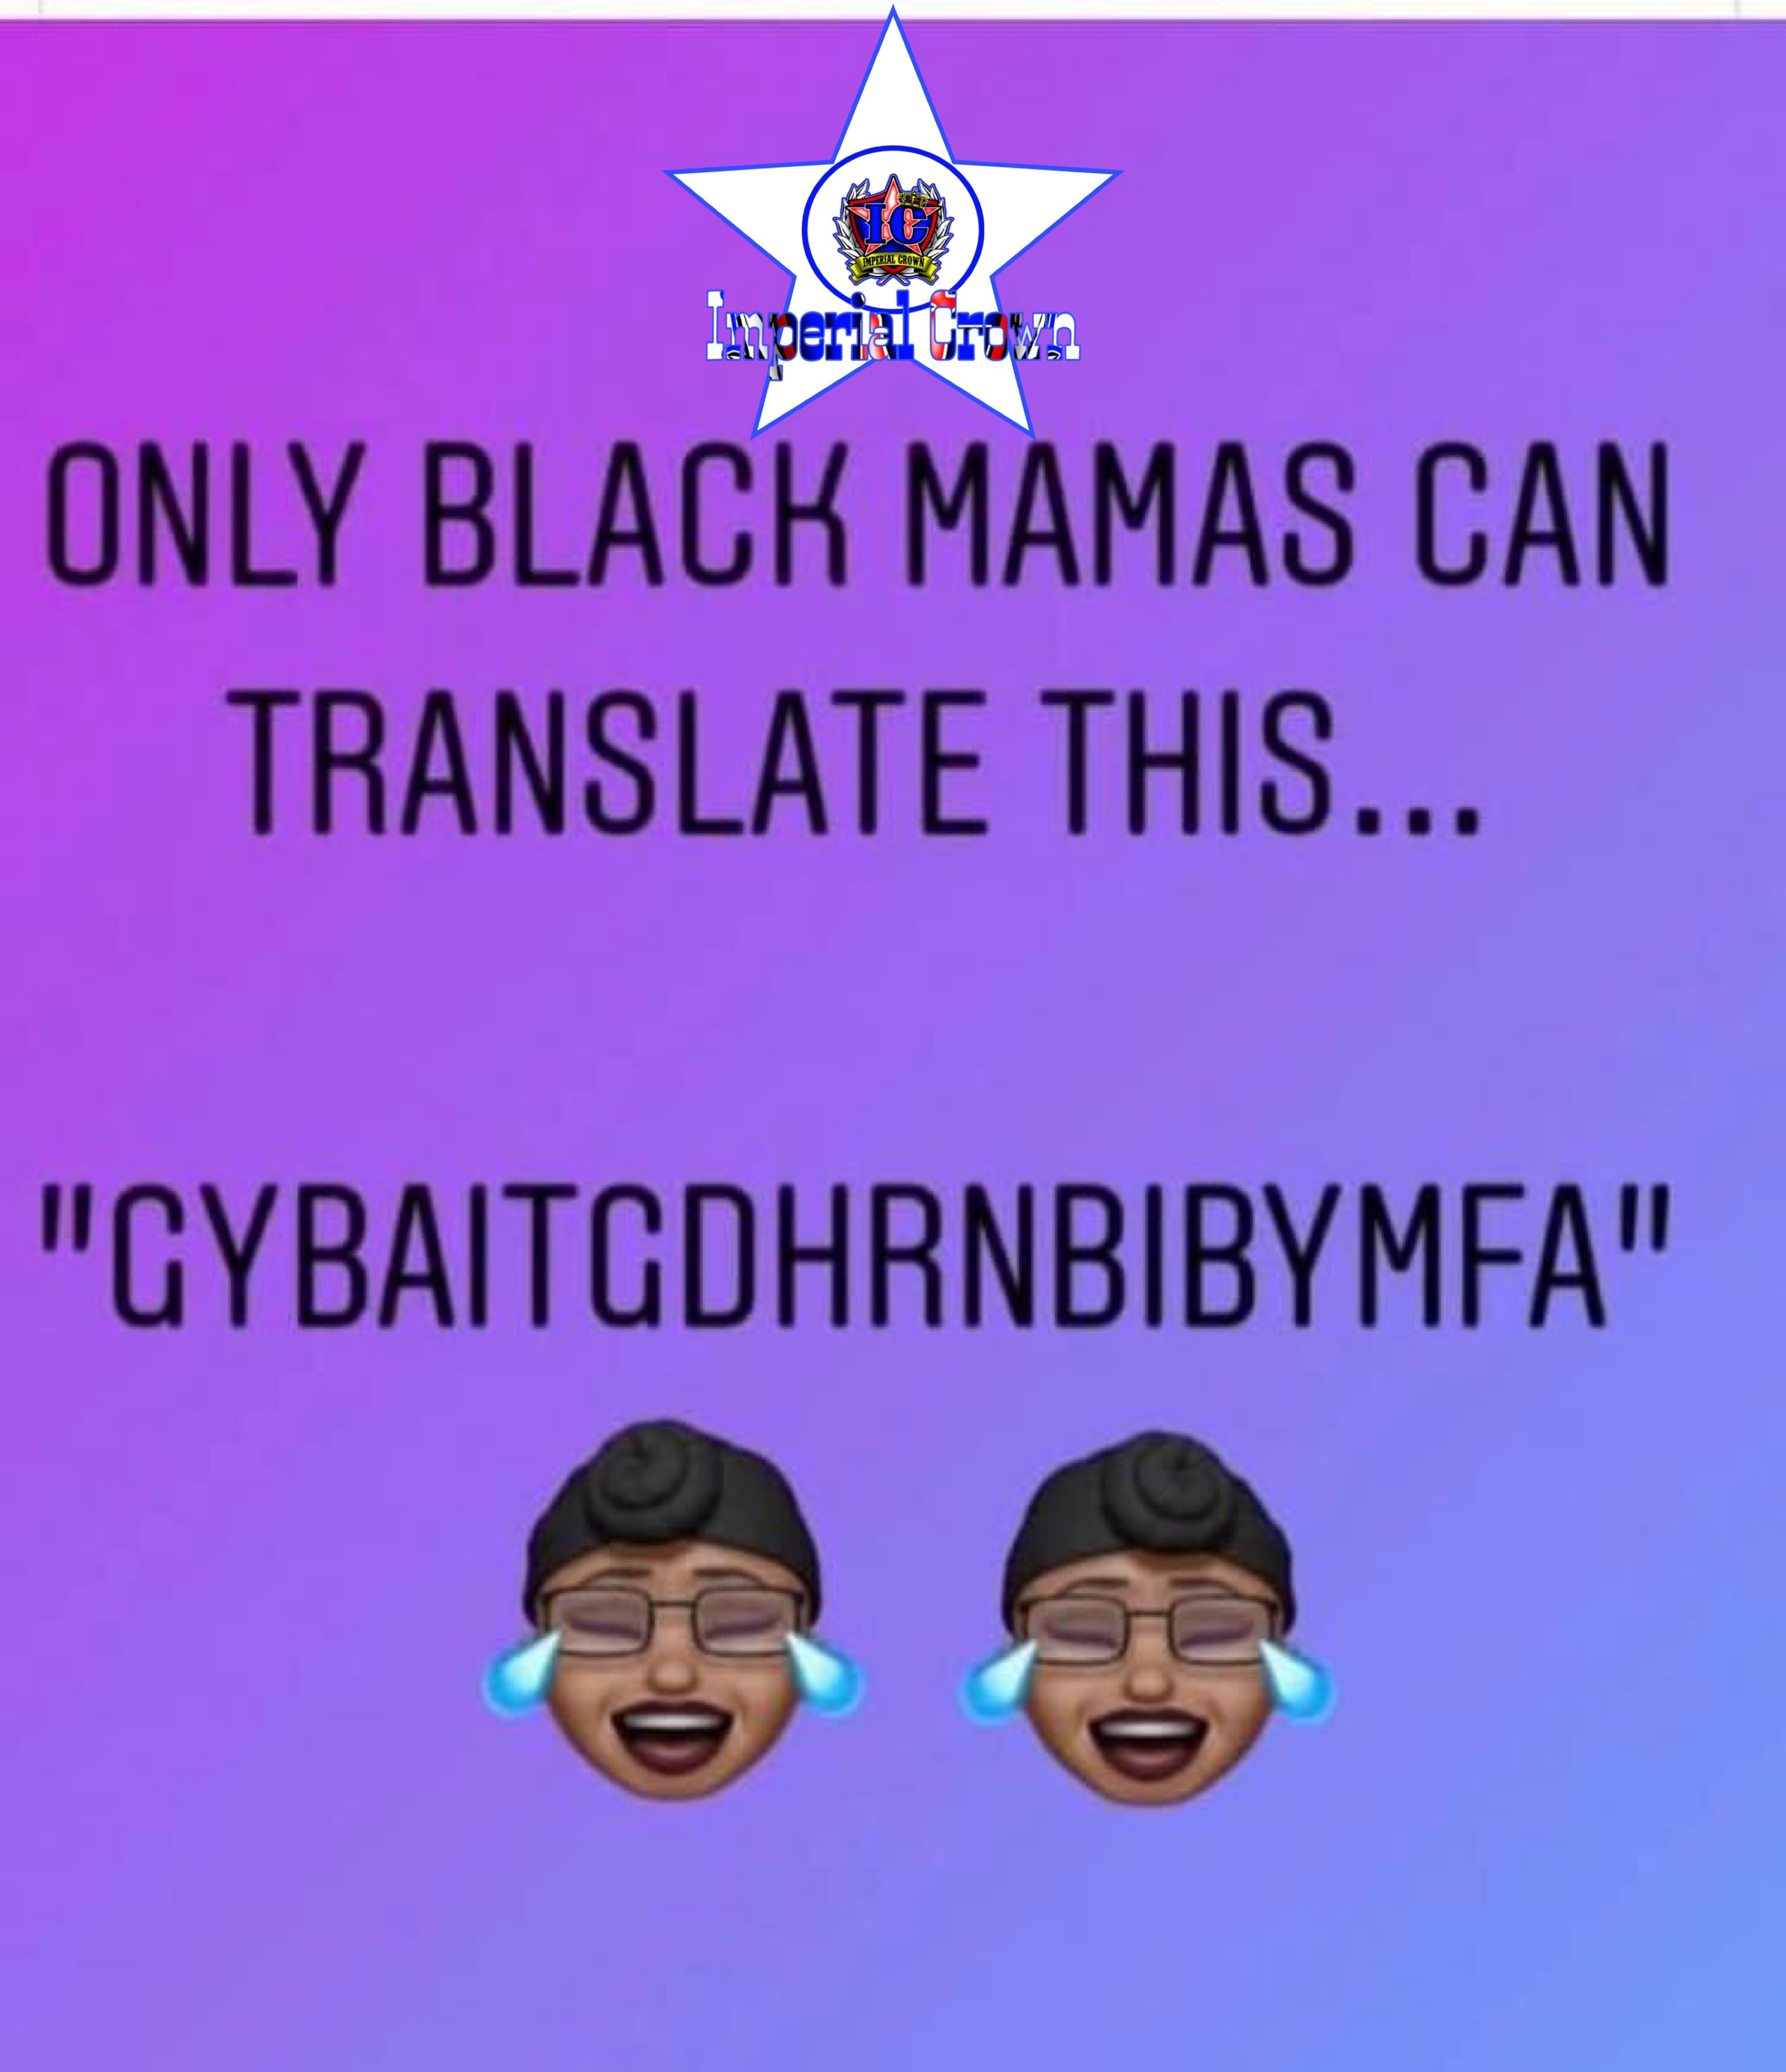 Only black mamas can translate this